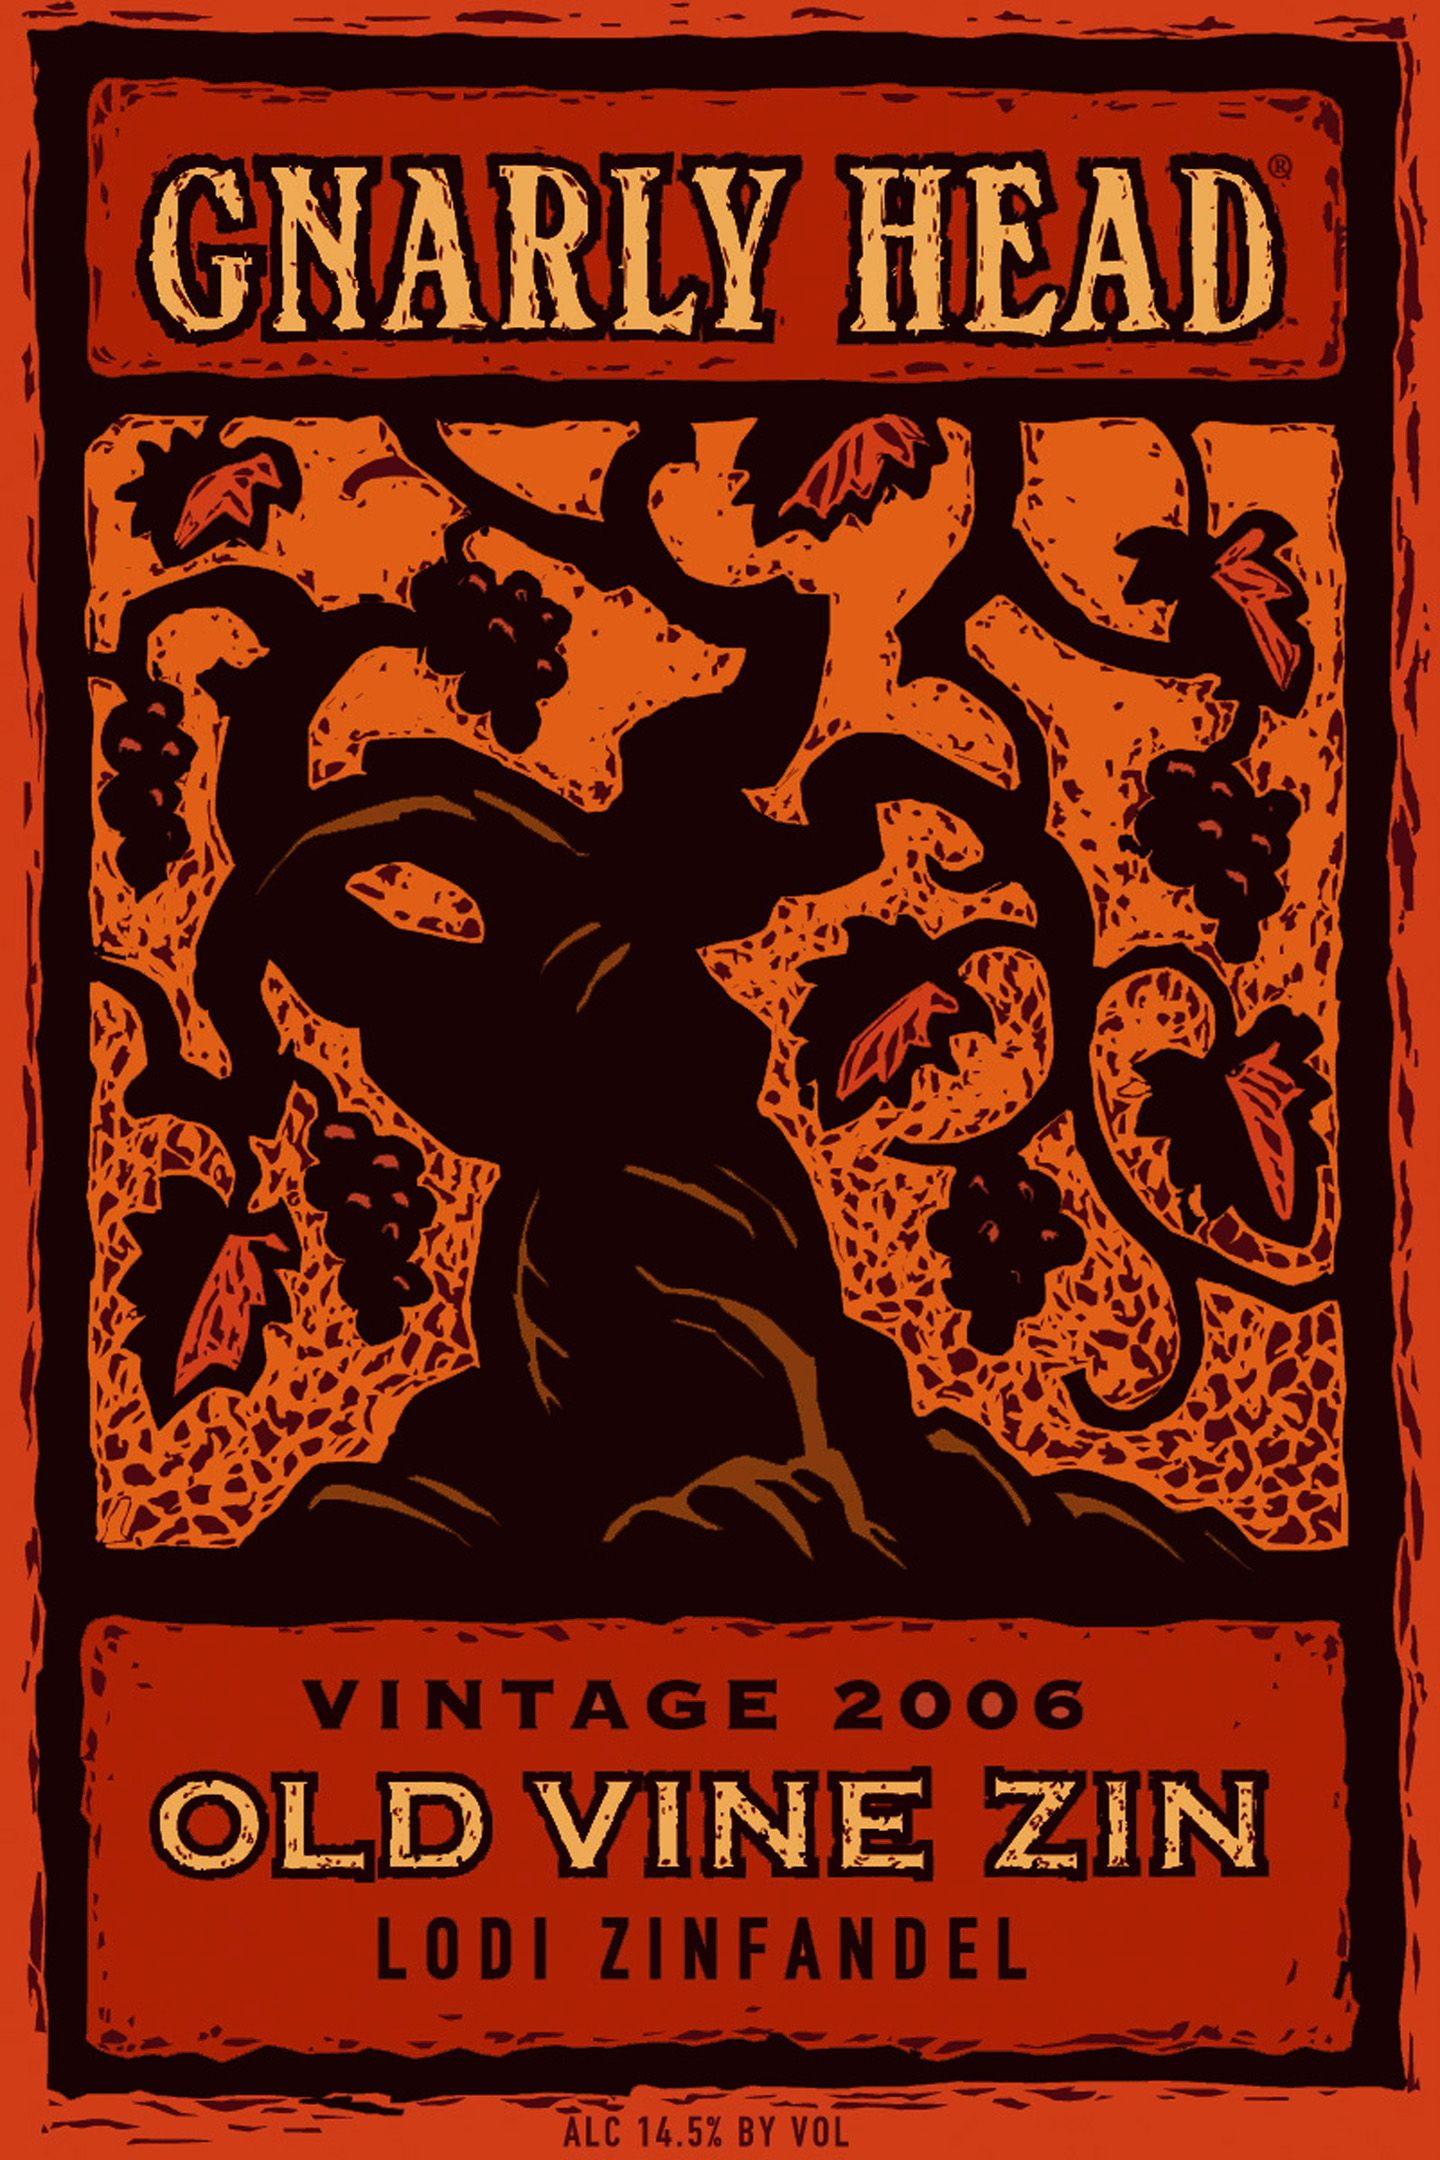 Gnarly Head Wine Label 15 Lcbo Loved This One At That Price Br Best Wine For Sangria Zinfandel Wine Tasting Notes